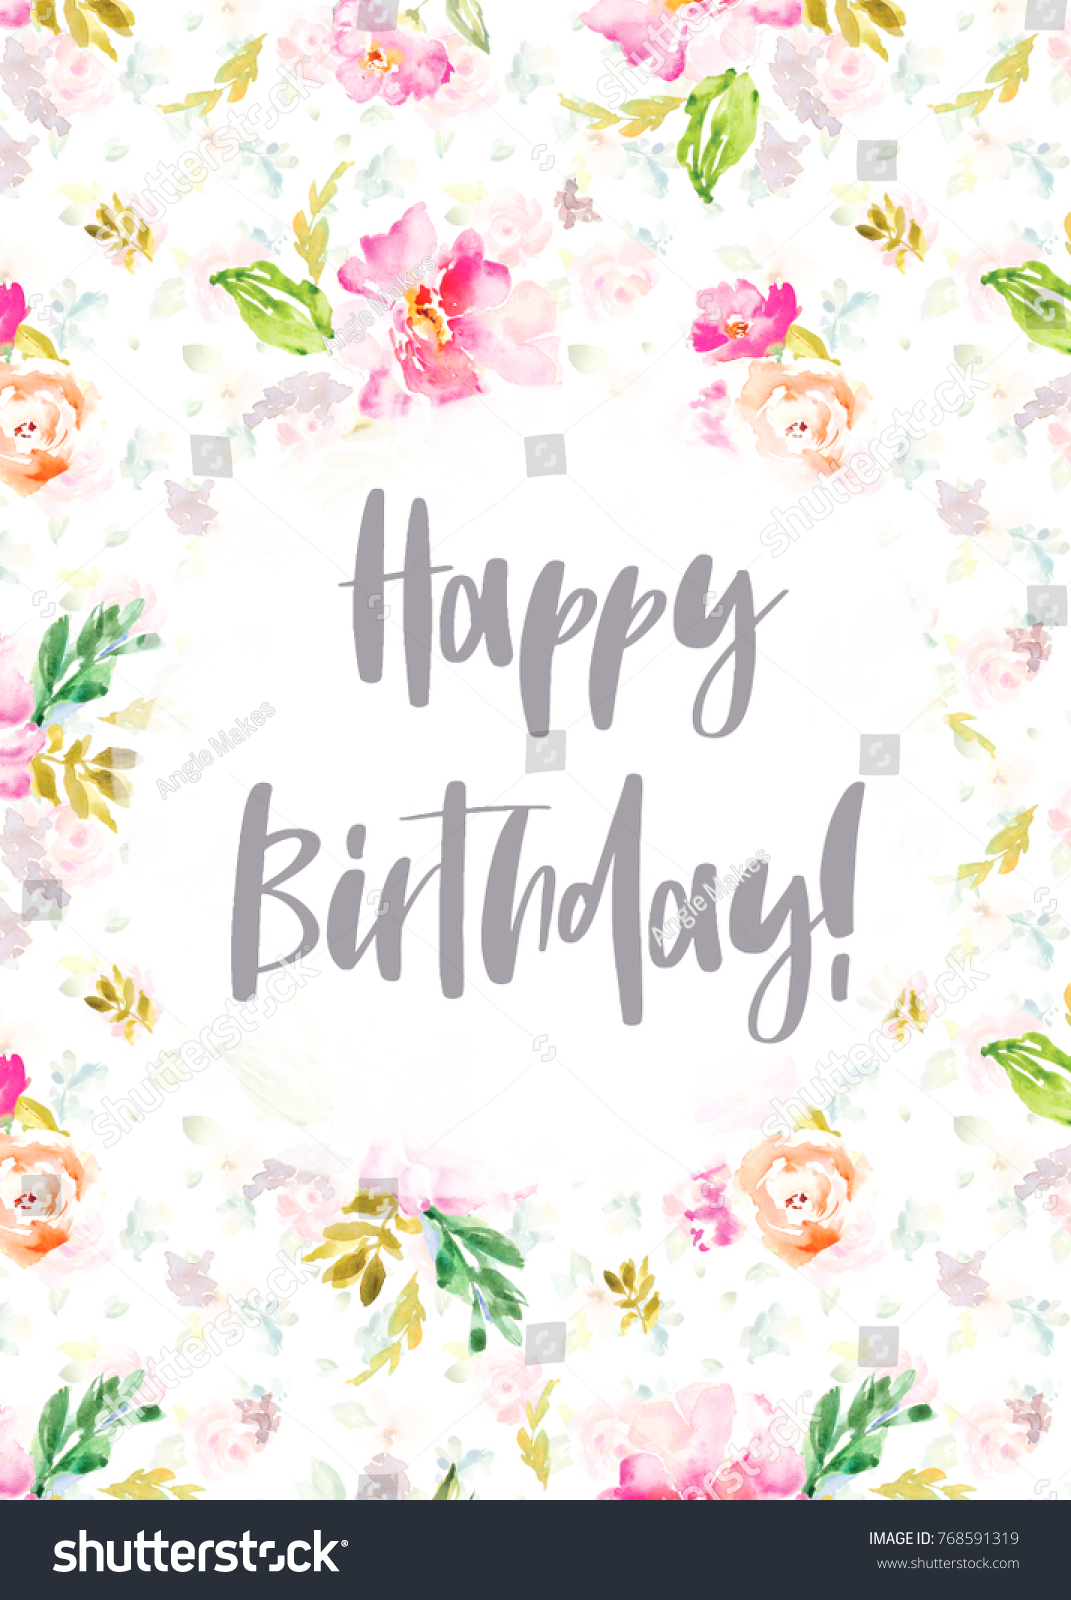 Happy birthday card painted watercolor flowers stock illustration happy birthday card with painted watercolor flowers izmirmasajfo Image collections